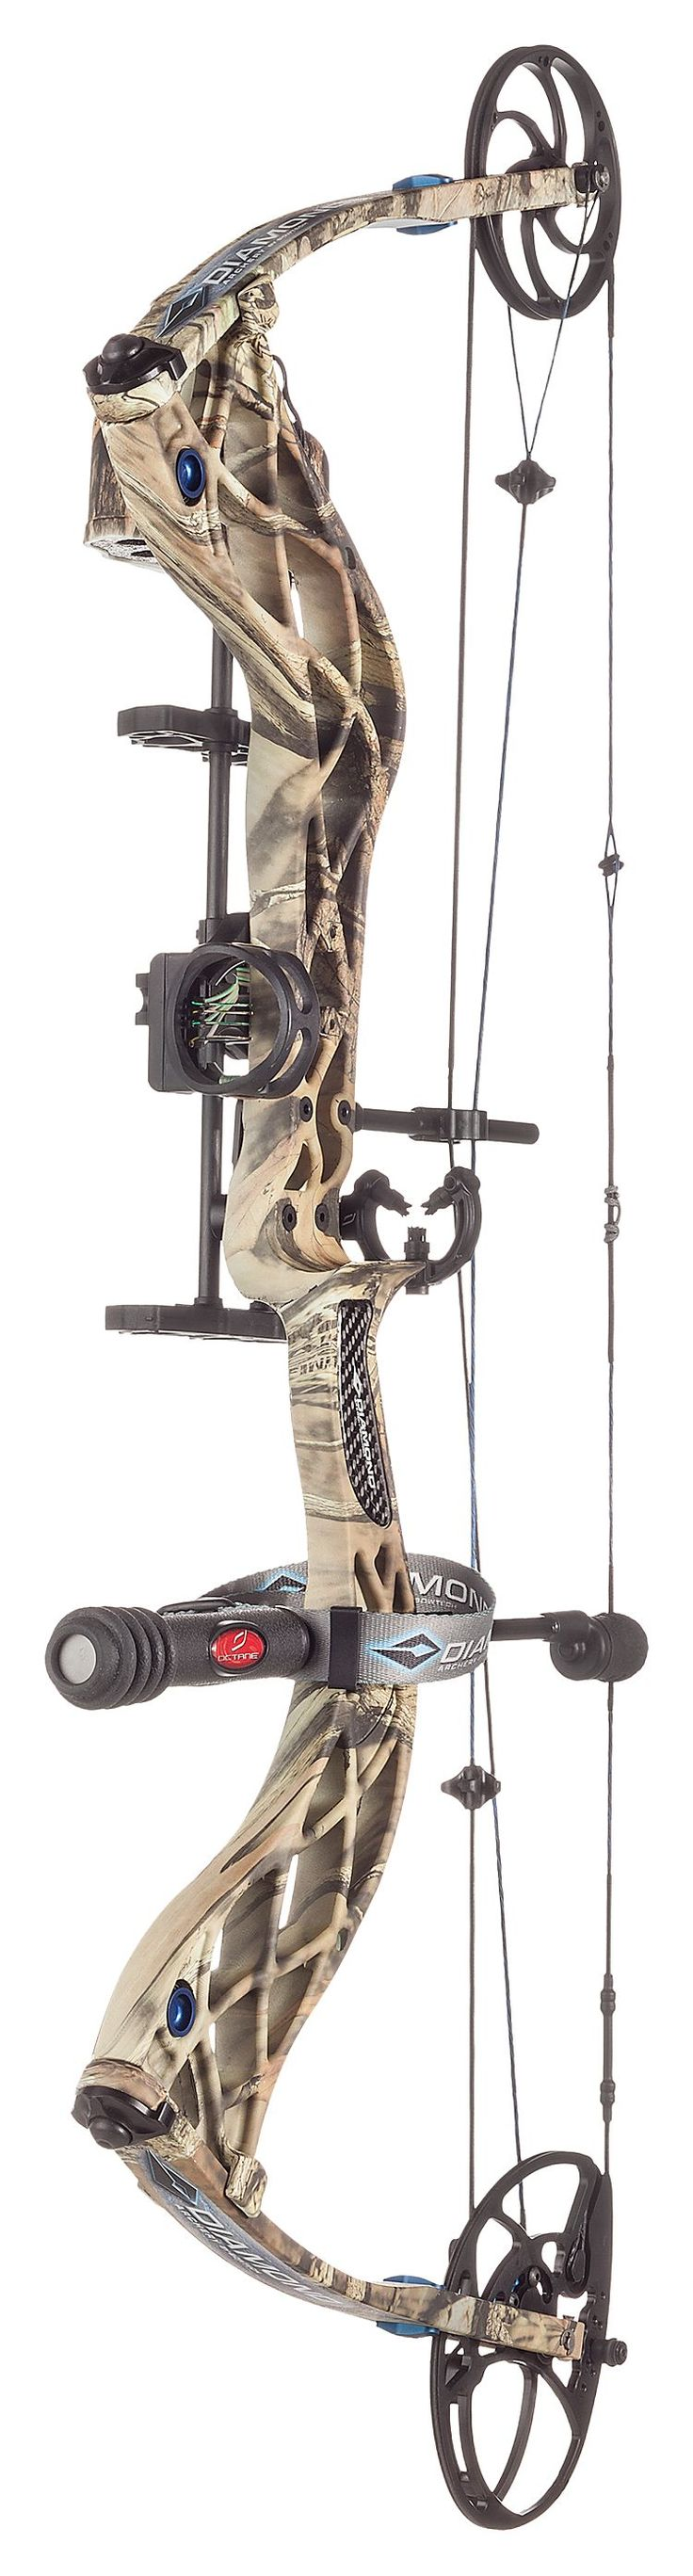 Diamond Carbon Cure R.A.K. Compound Bow Package | Bass Pro Shops